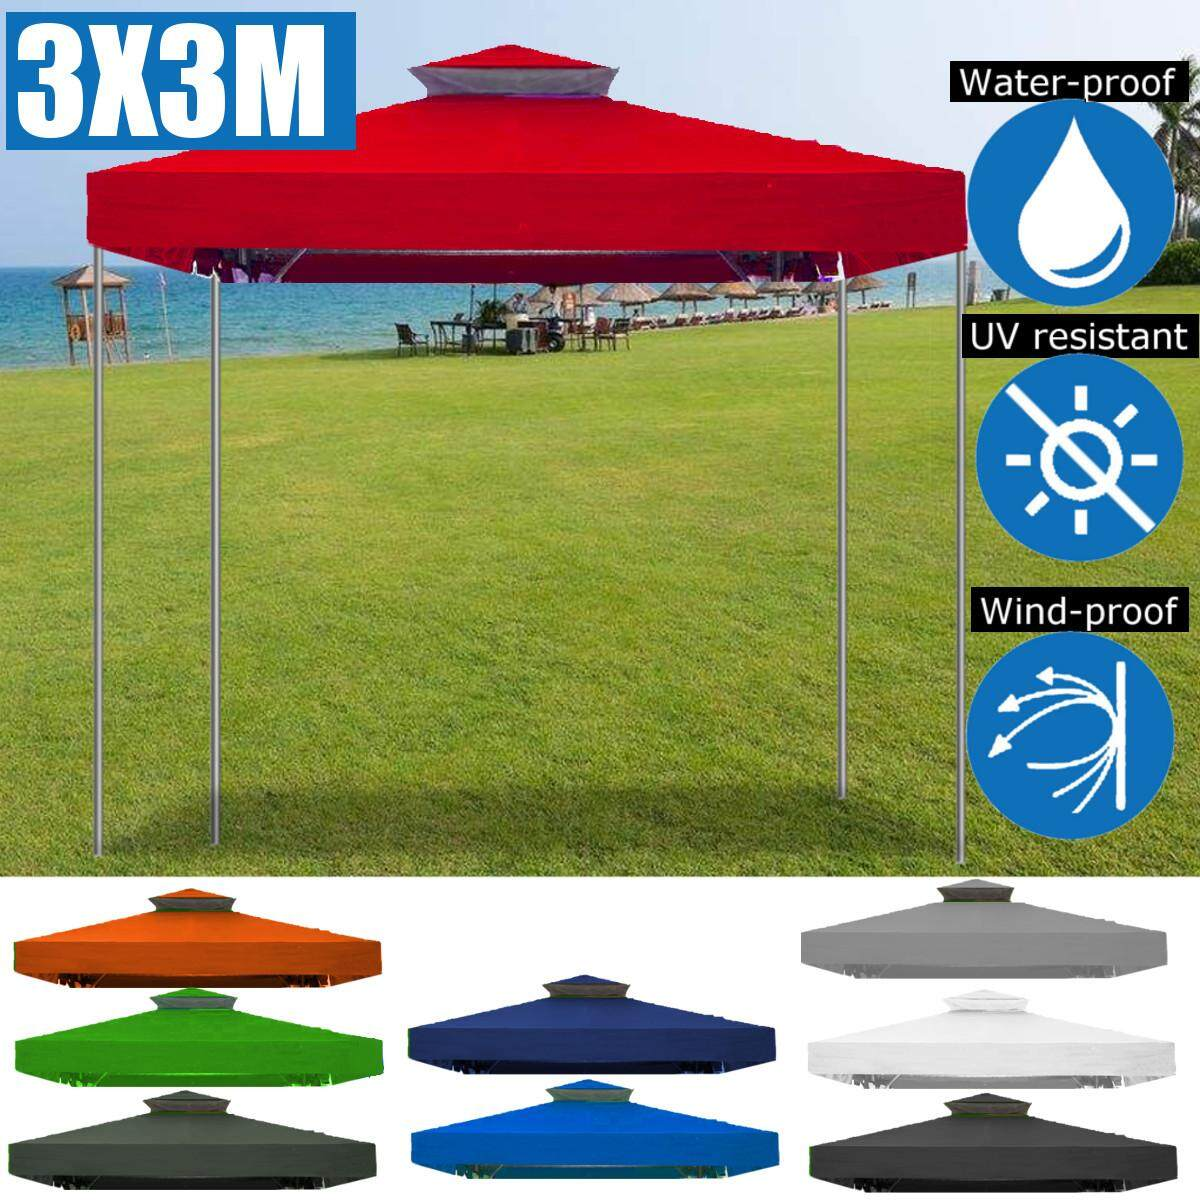 3x3m Tent Canopy Gazebo Awnings Pop Up Outdoor Patio Garden Shade Replacement